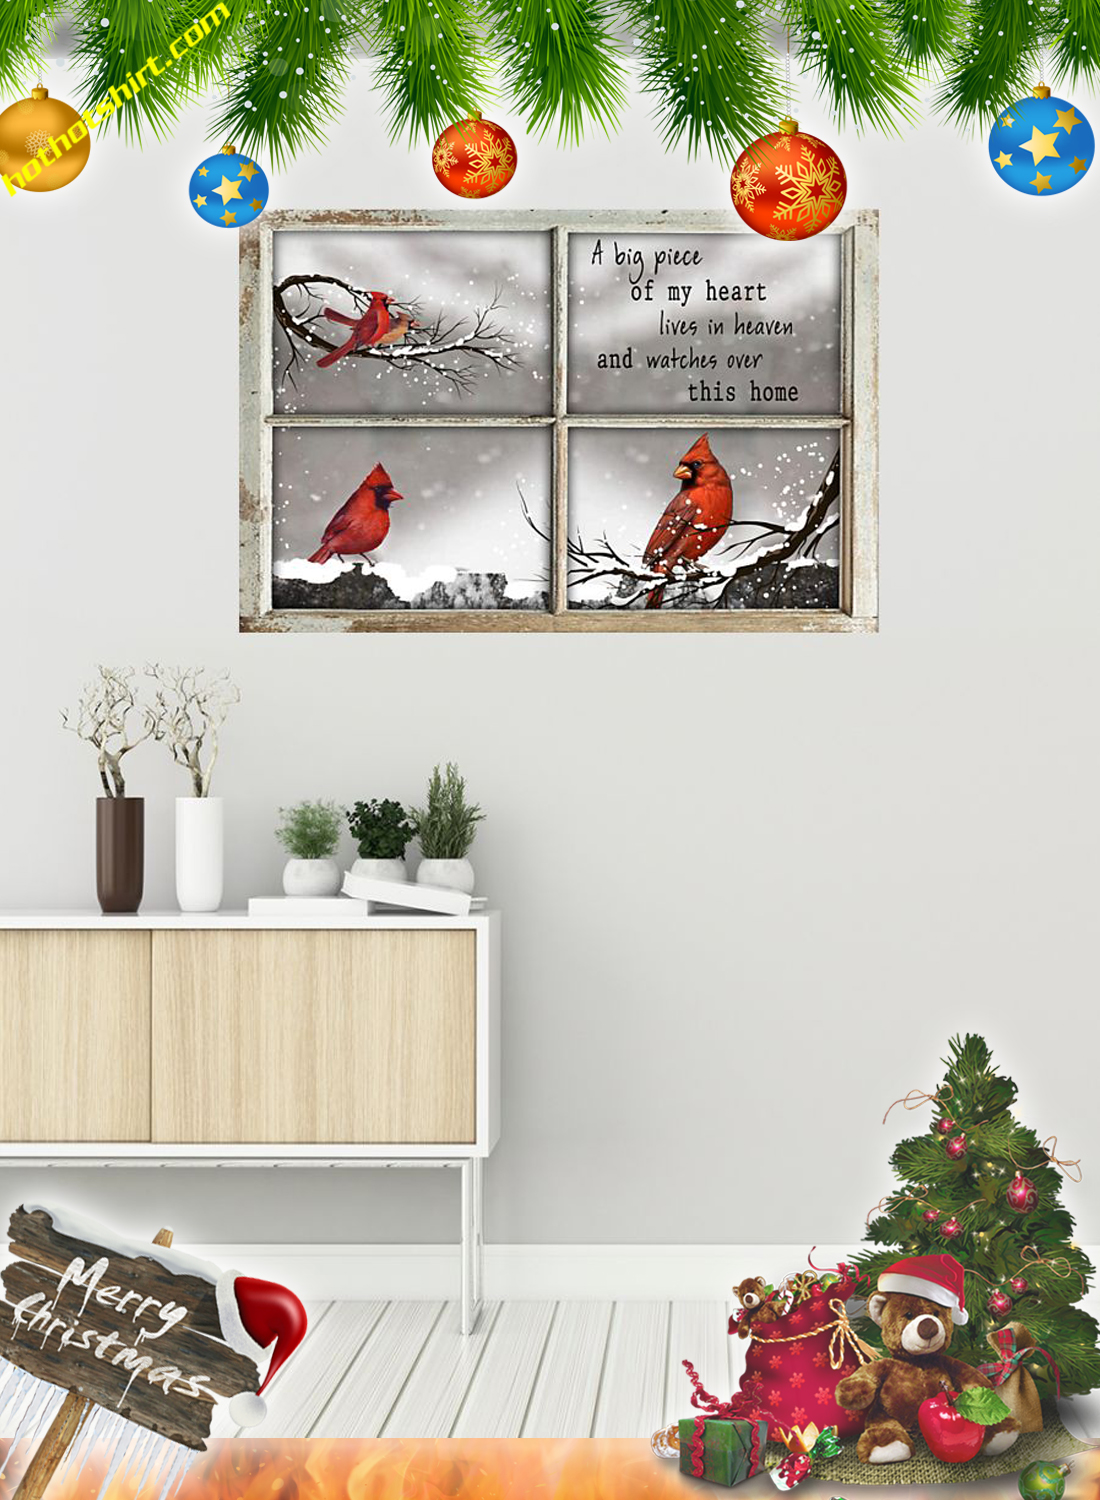 Cardinal Bird A big piece of my heart lives in heaven poster 1